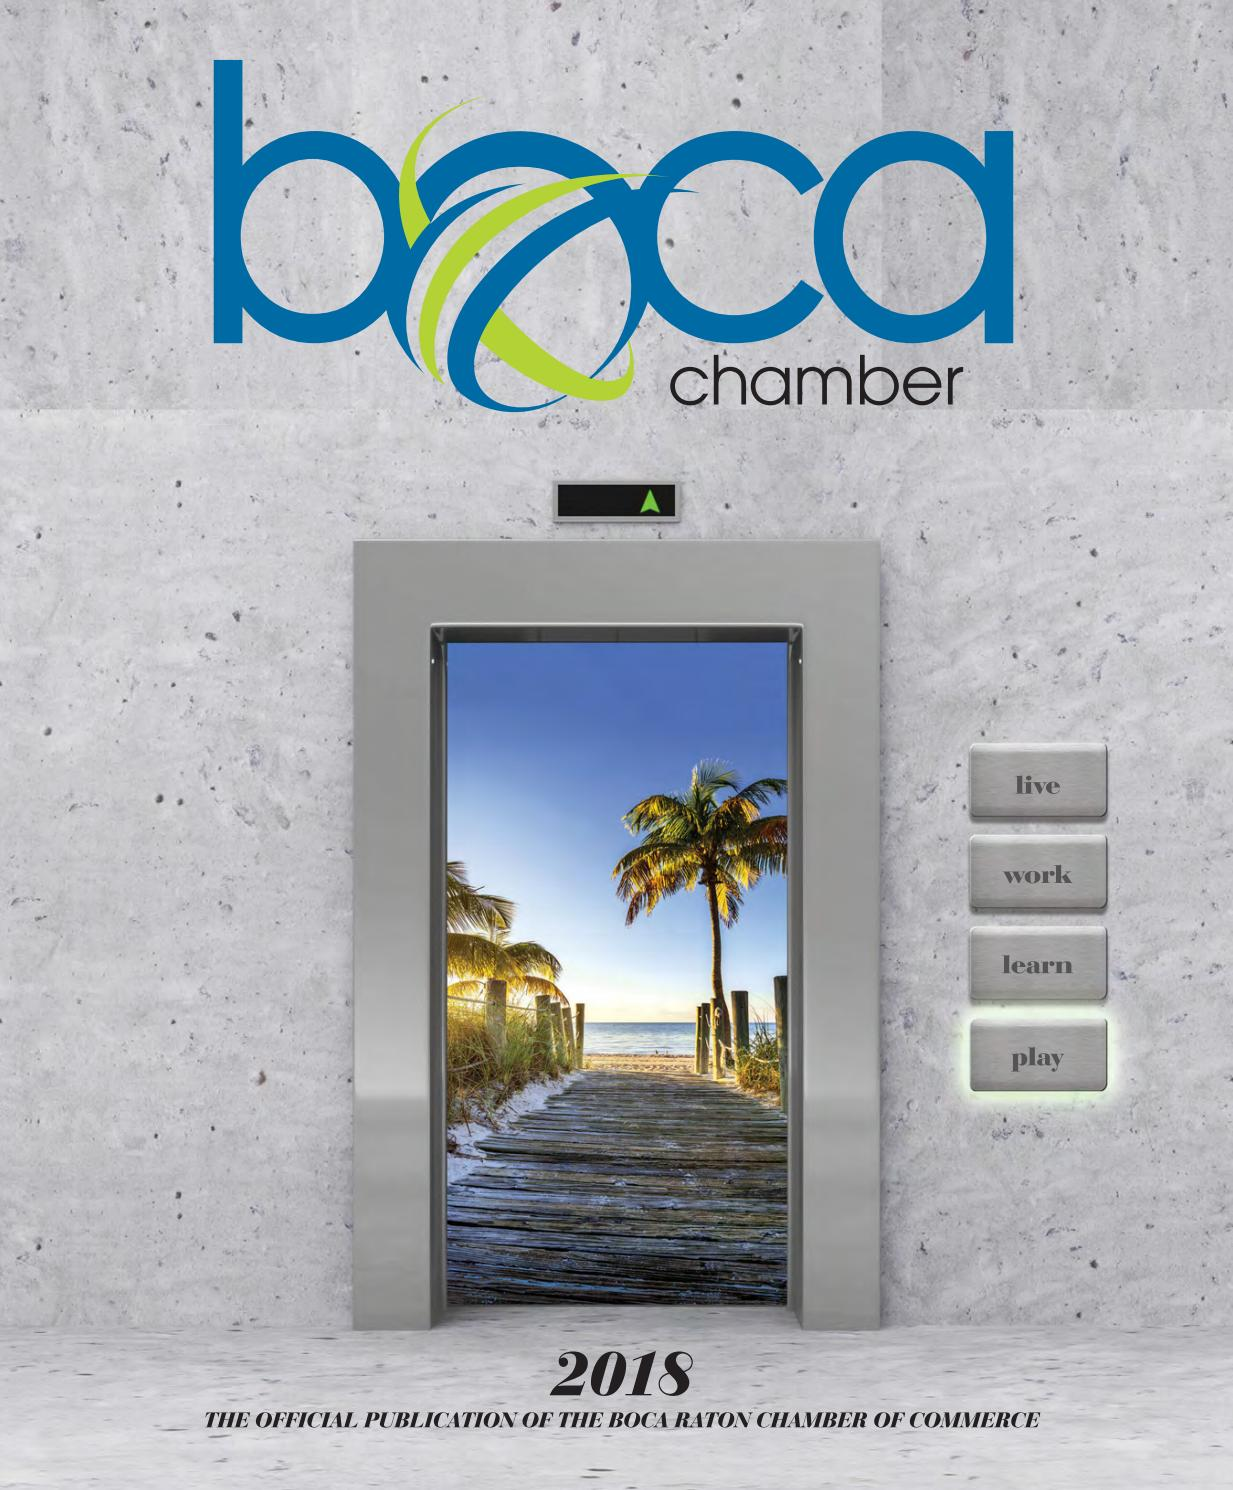 Boca Chamber Annual 2017 2018 By Jes Media Issuu Recycling Computer Circuit Boards Stock Image T820 0524 Science